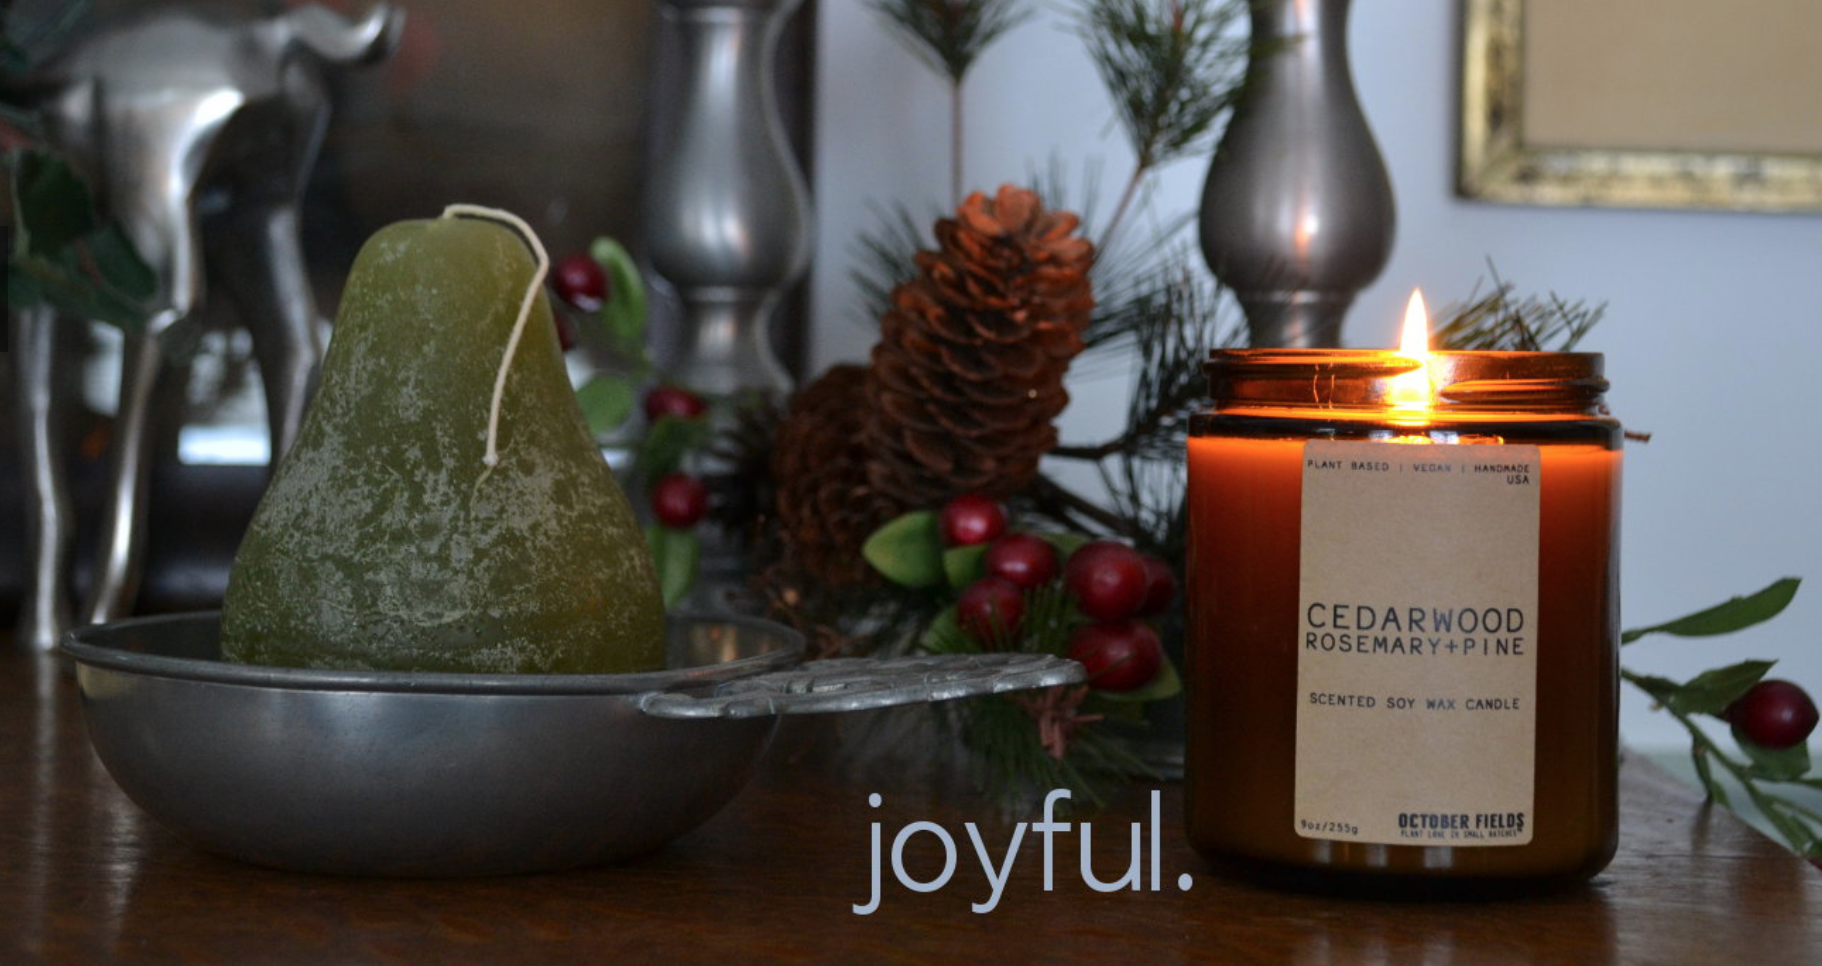 Sustainable Alternative Organic Certified Herbal Vegan Gifts